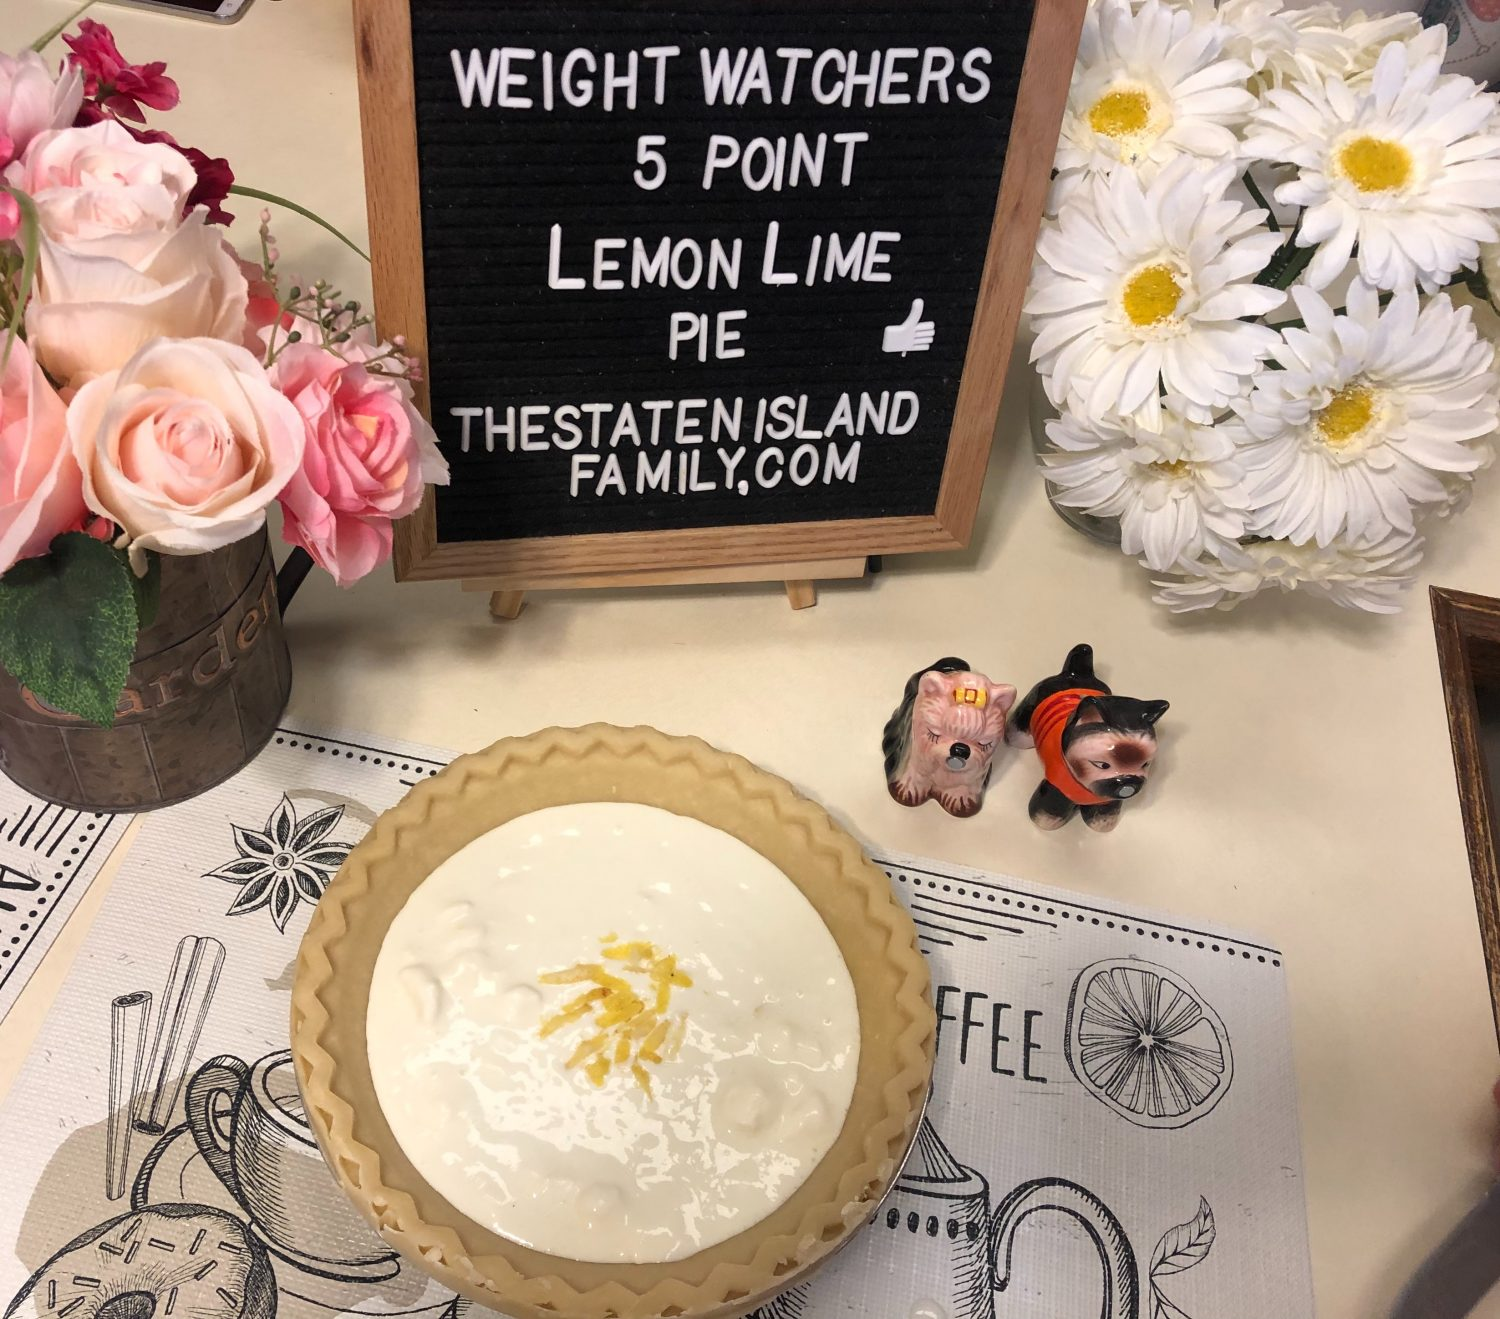 Weight Watchers Lemon Lime Pie